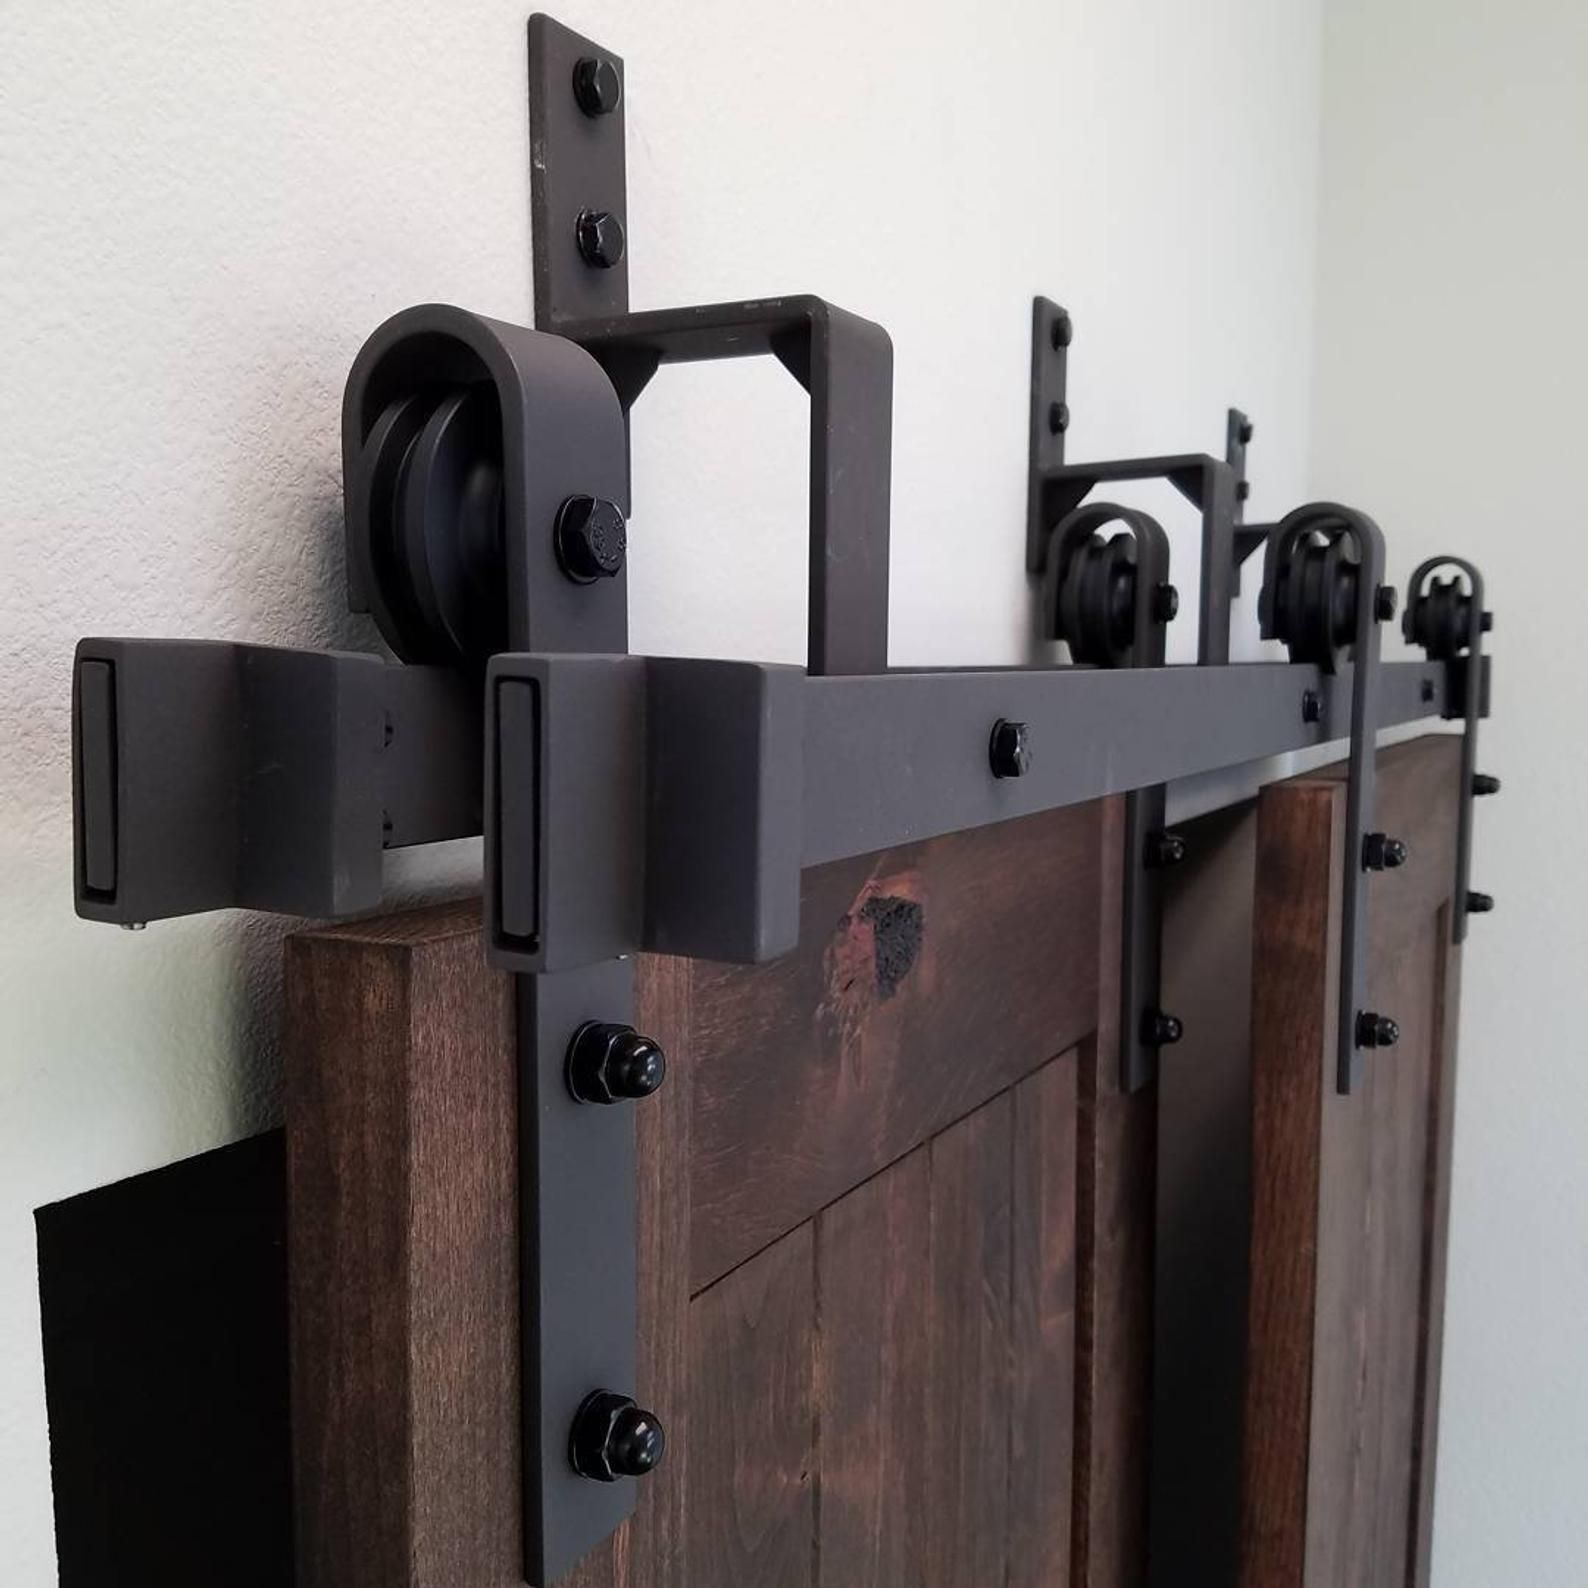 The Double Track Bypass Sliding Barn Door Hardware System Kit Includes 2 Hanger Sets 4 Hangers Tot Bypass Barn Door Hardware Bypass Barn Door Barn Door Closet